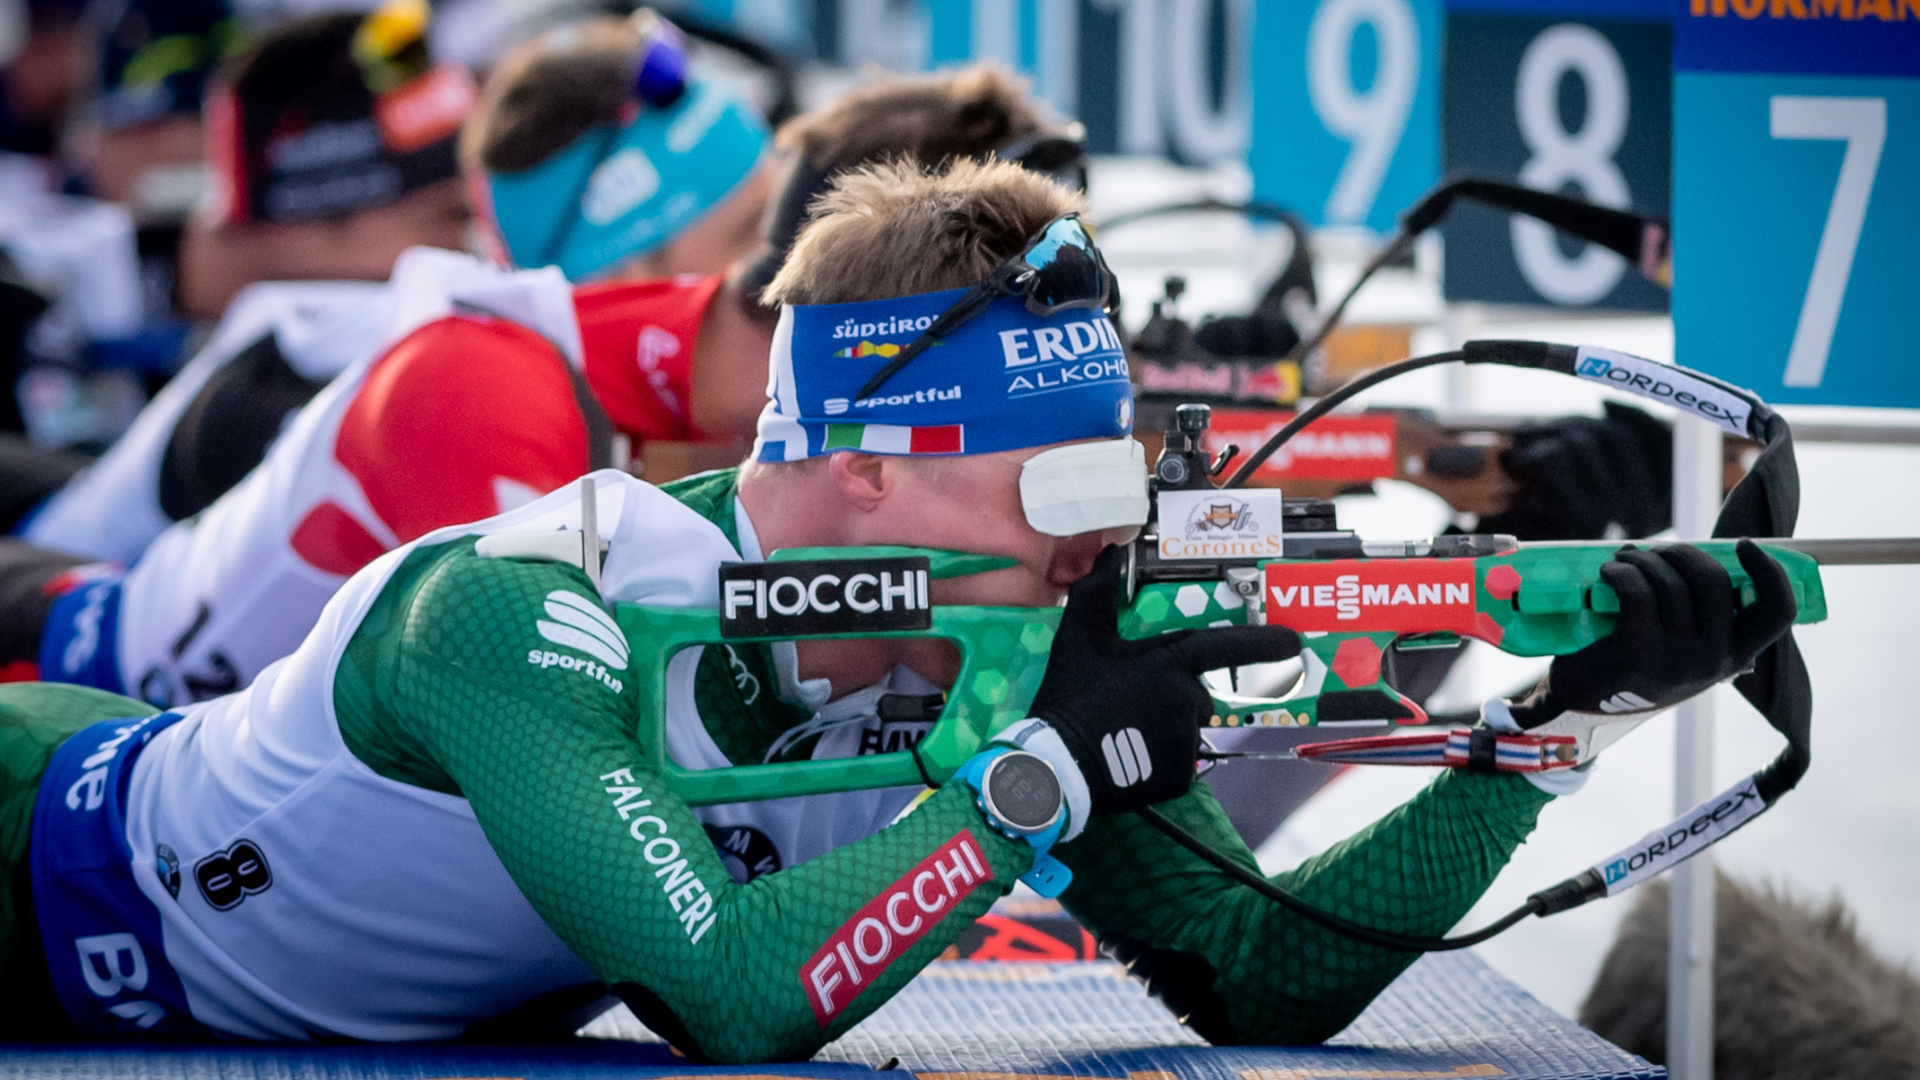 FIOCCHI: ONCE AGAIN TOGETHER WITH THE ITALIAN NATIONAL BIATHLON TEAM